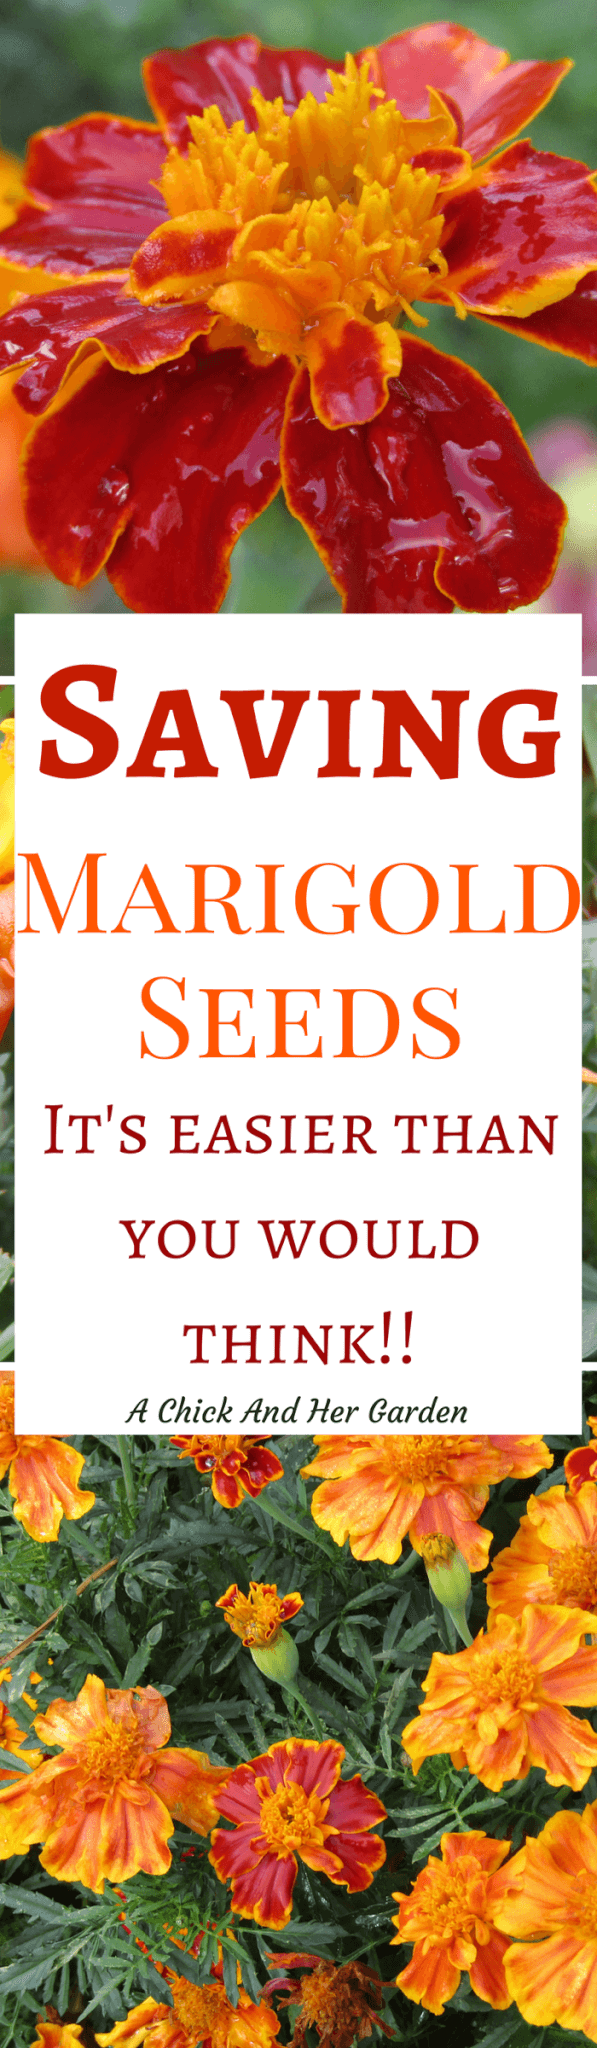 how to get seeds out of marigolds